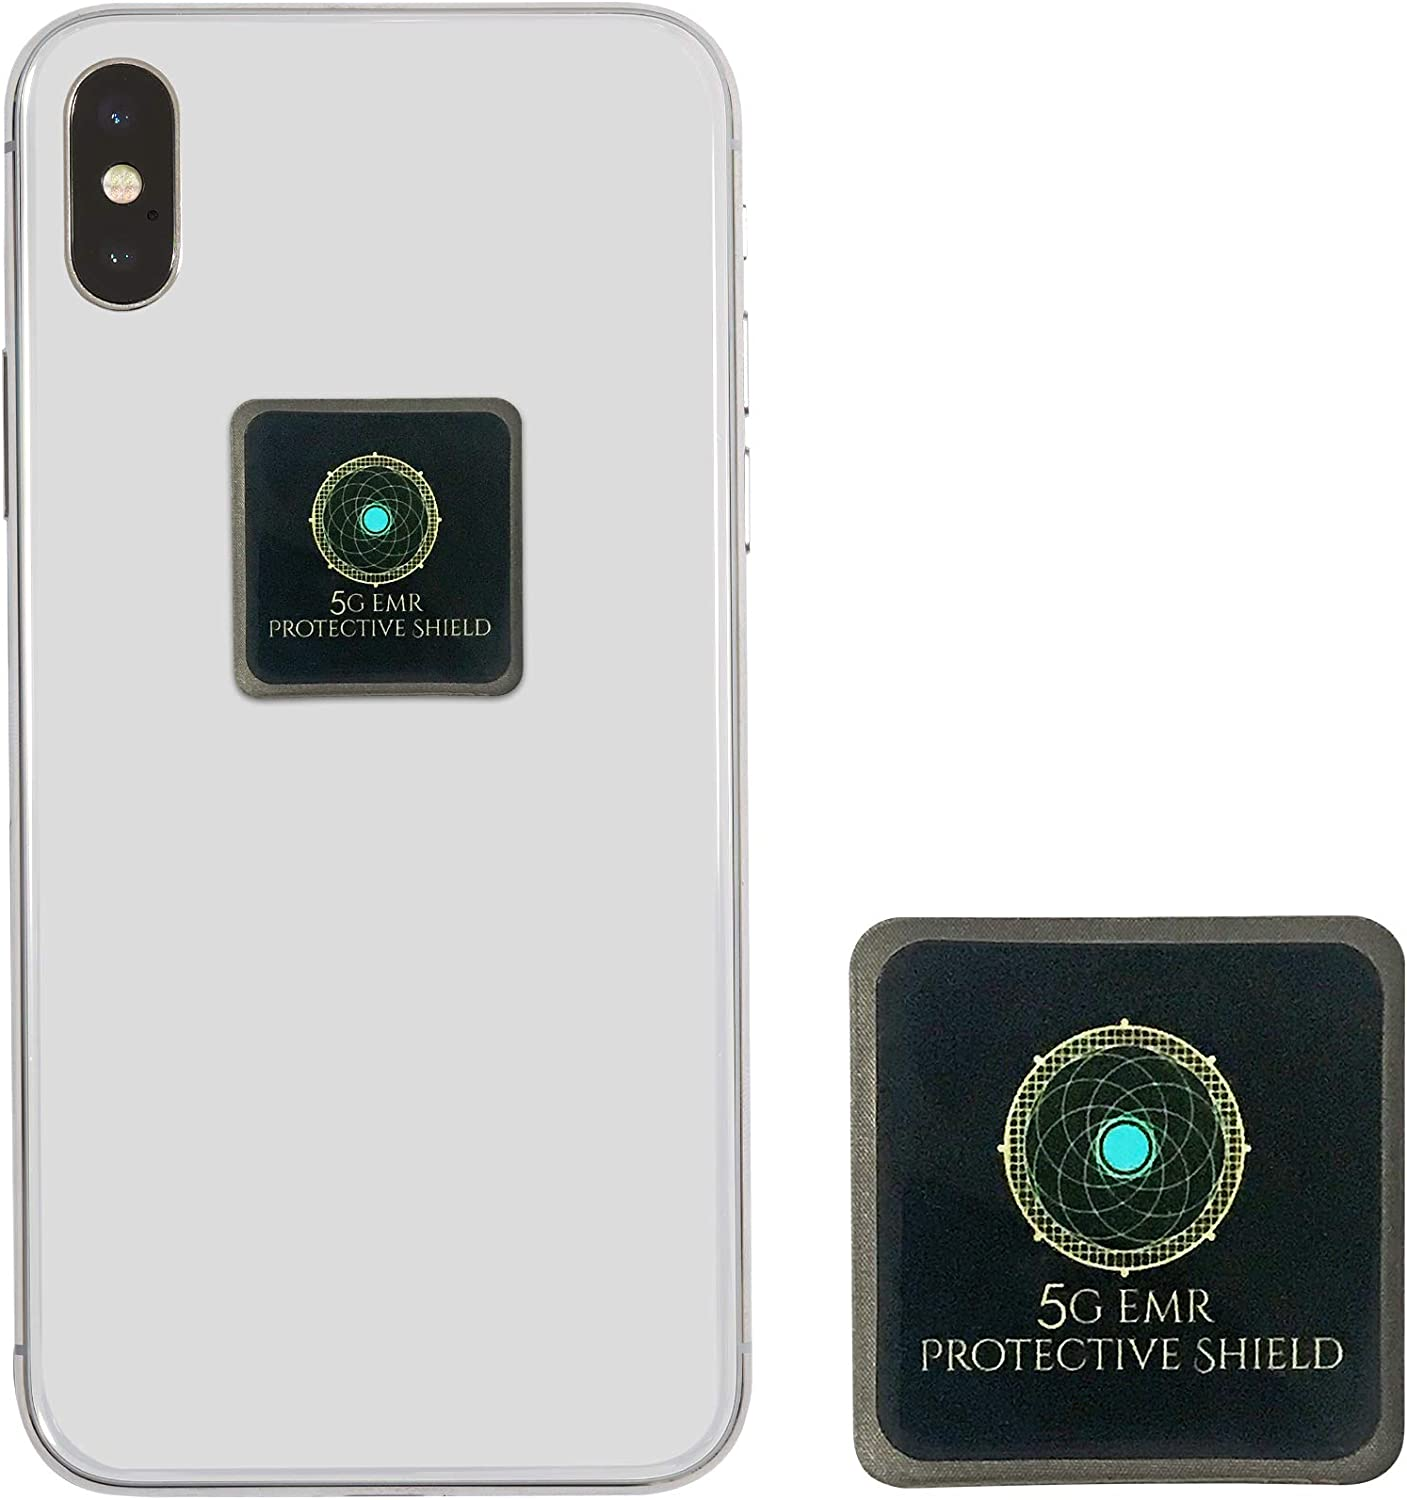 5G EMF Radiation Blocker for Cell Phone Tested and Certified in The USA - Neutralizer Shield Stickers for Phones Computer Radiation and Heat Reducing Blocker Sticker - 5G Protection Shielding Guard